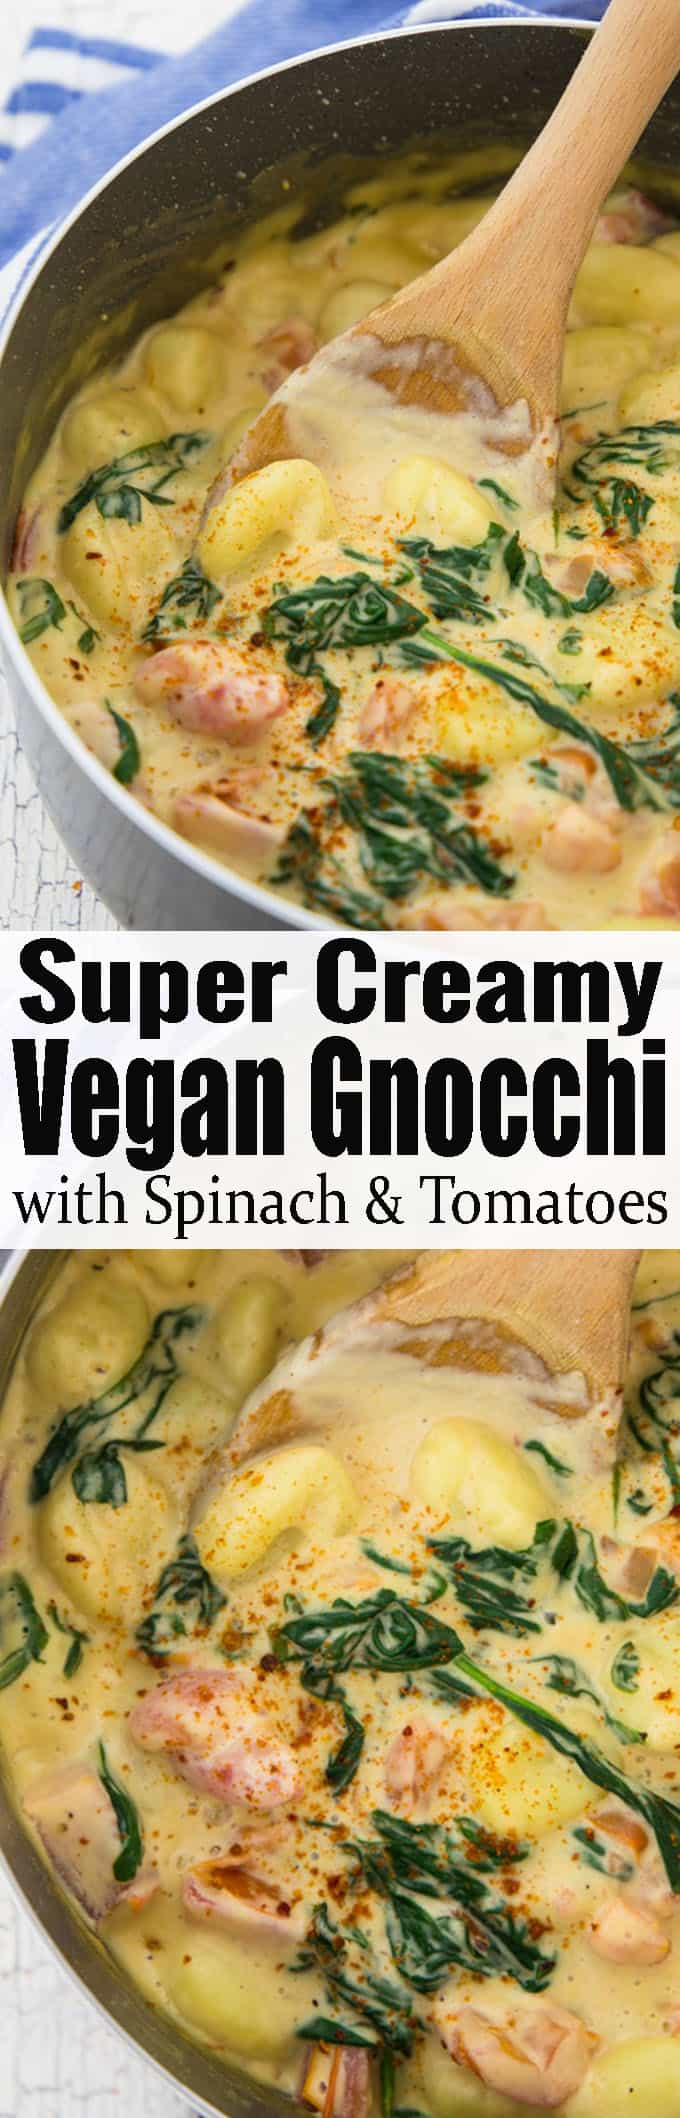 These vegan gnocchi with a creamy cashew sauce, spinach, and tomatoes are the perfect weeknight meal. It's super easy to make and incredibly comforting! One of my favorite vegetarian dinner recipes! Find more vegan recipes at veganheaven.org <3